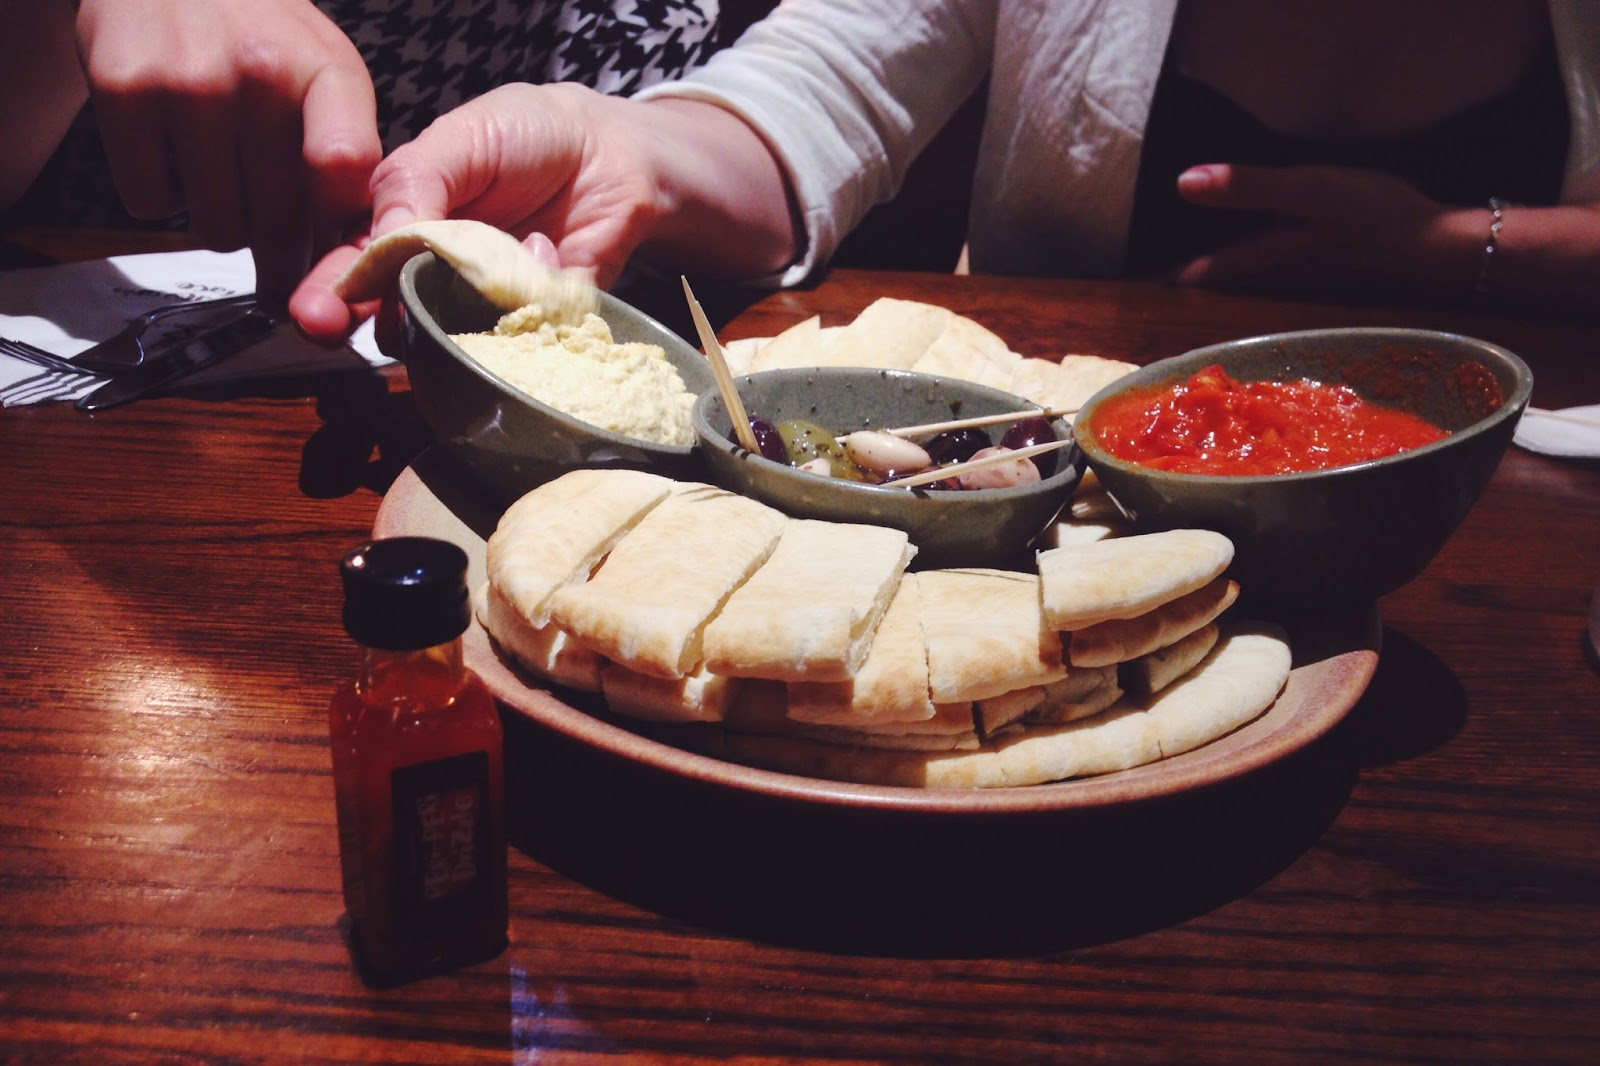 Nandos, food blog